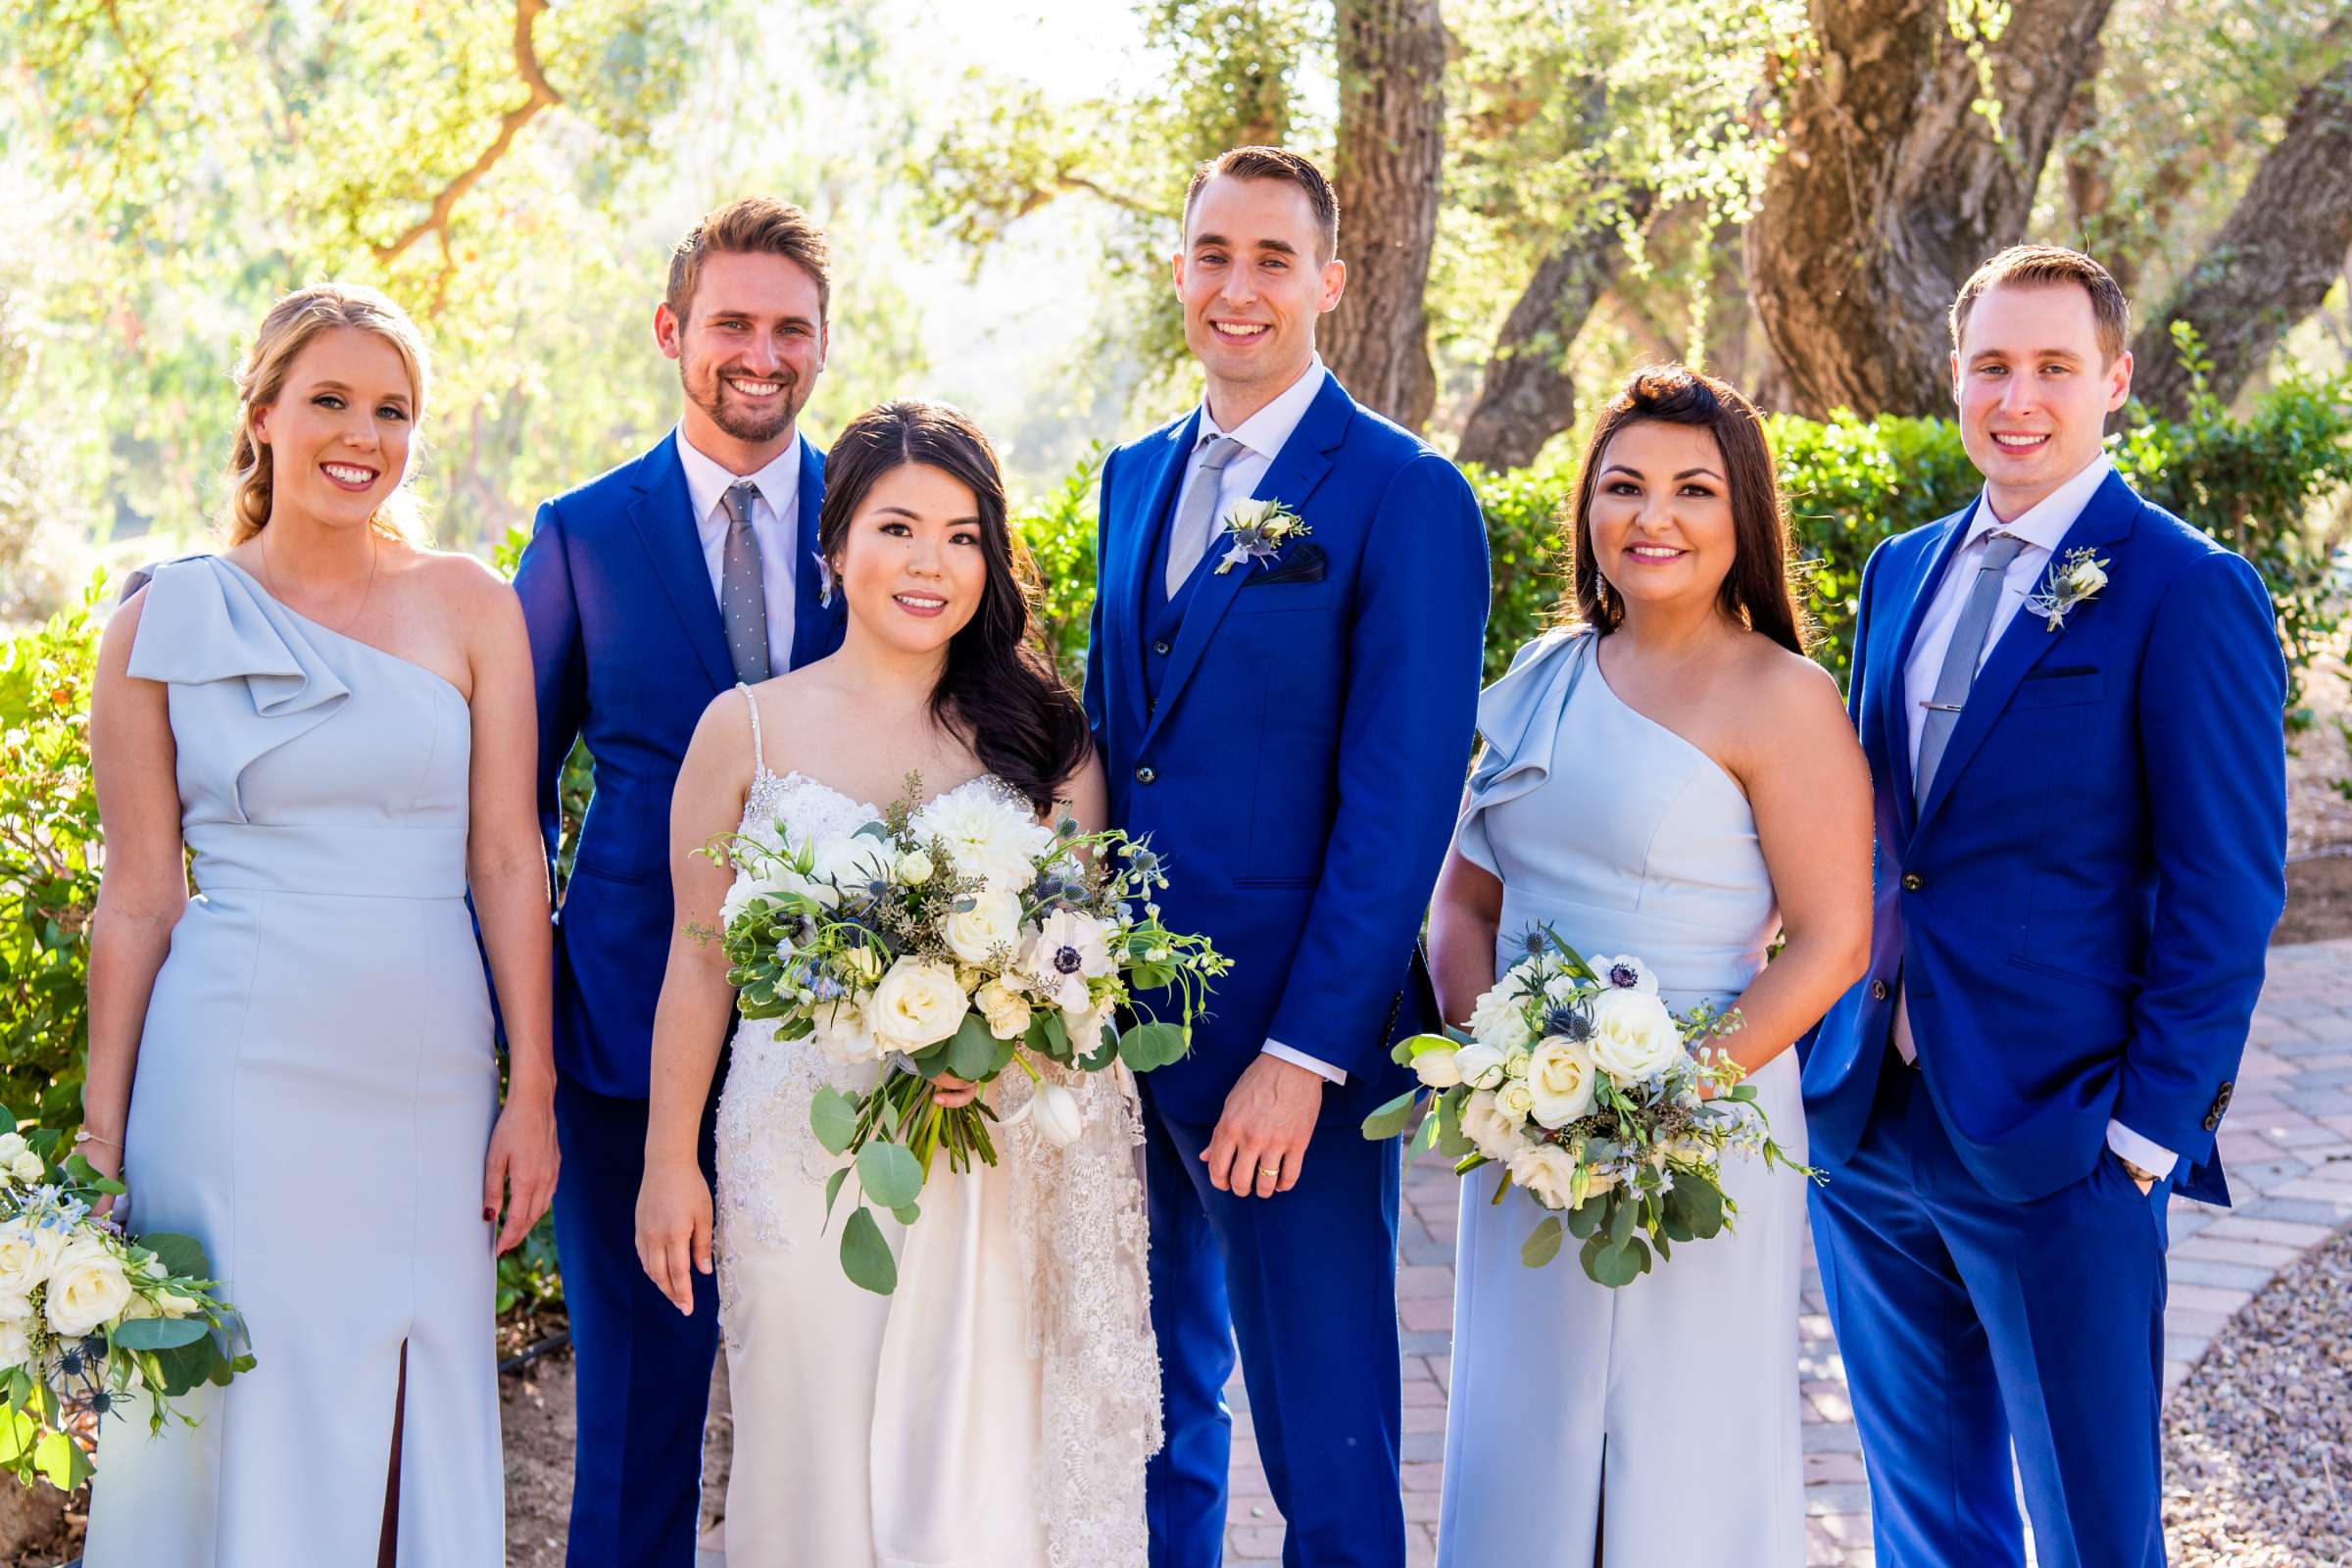 Mt Woodson Castle Wedding coordinated by I Do Weddings, Aya and Jared Wedding Photo #486965 by True Photography